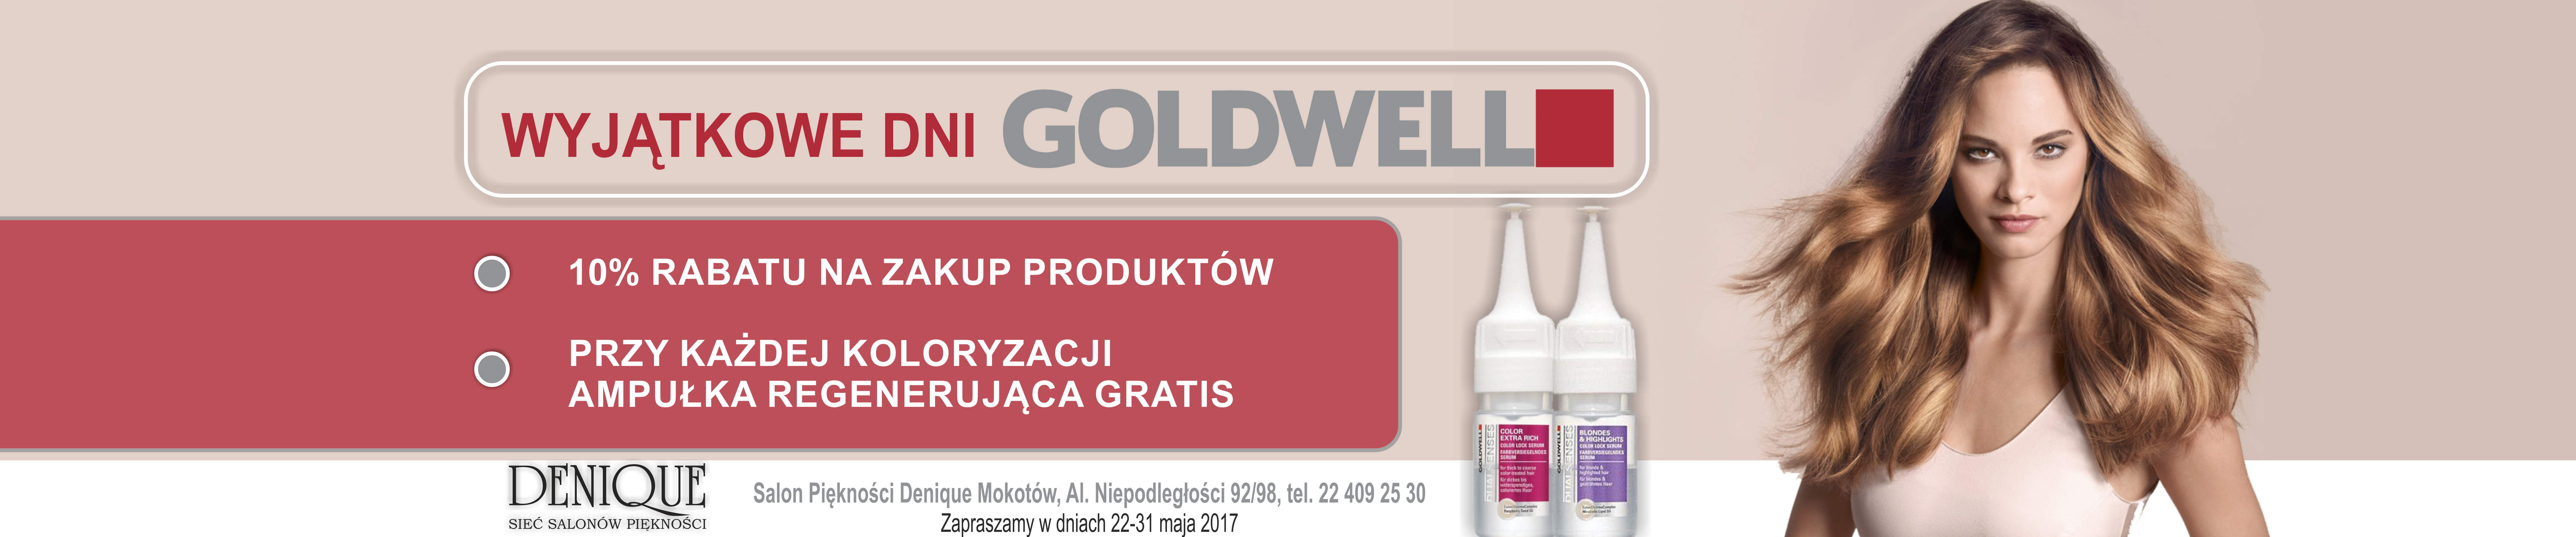 Goldwell_Event